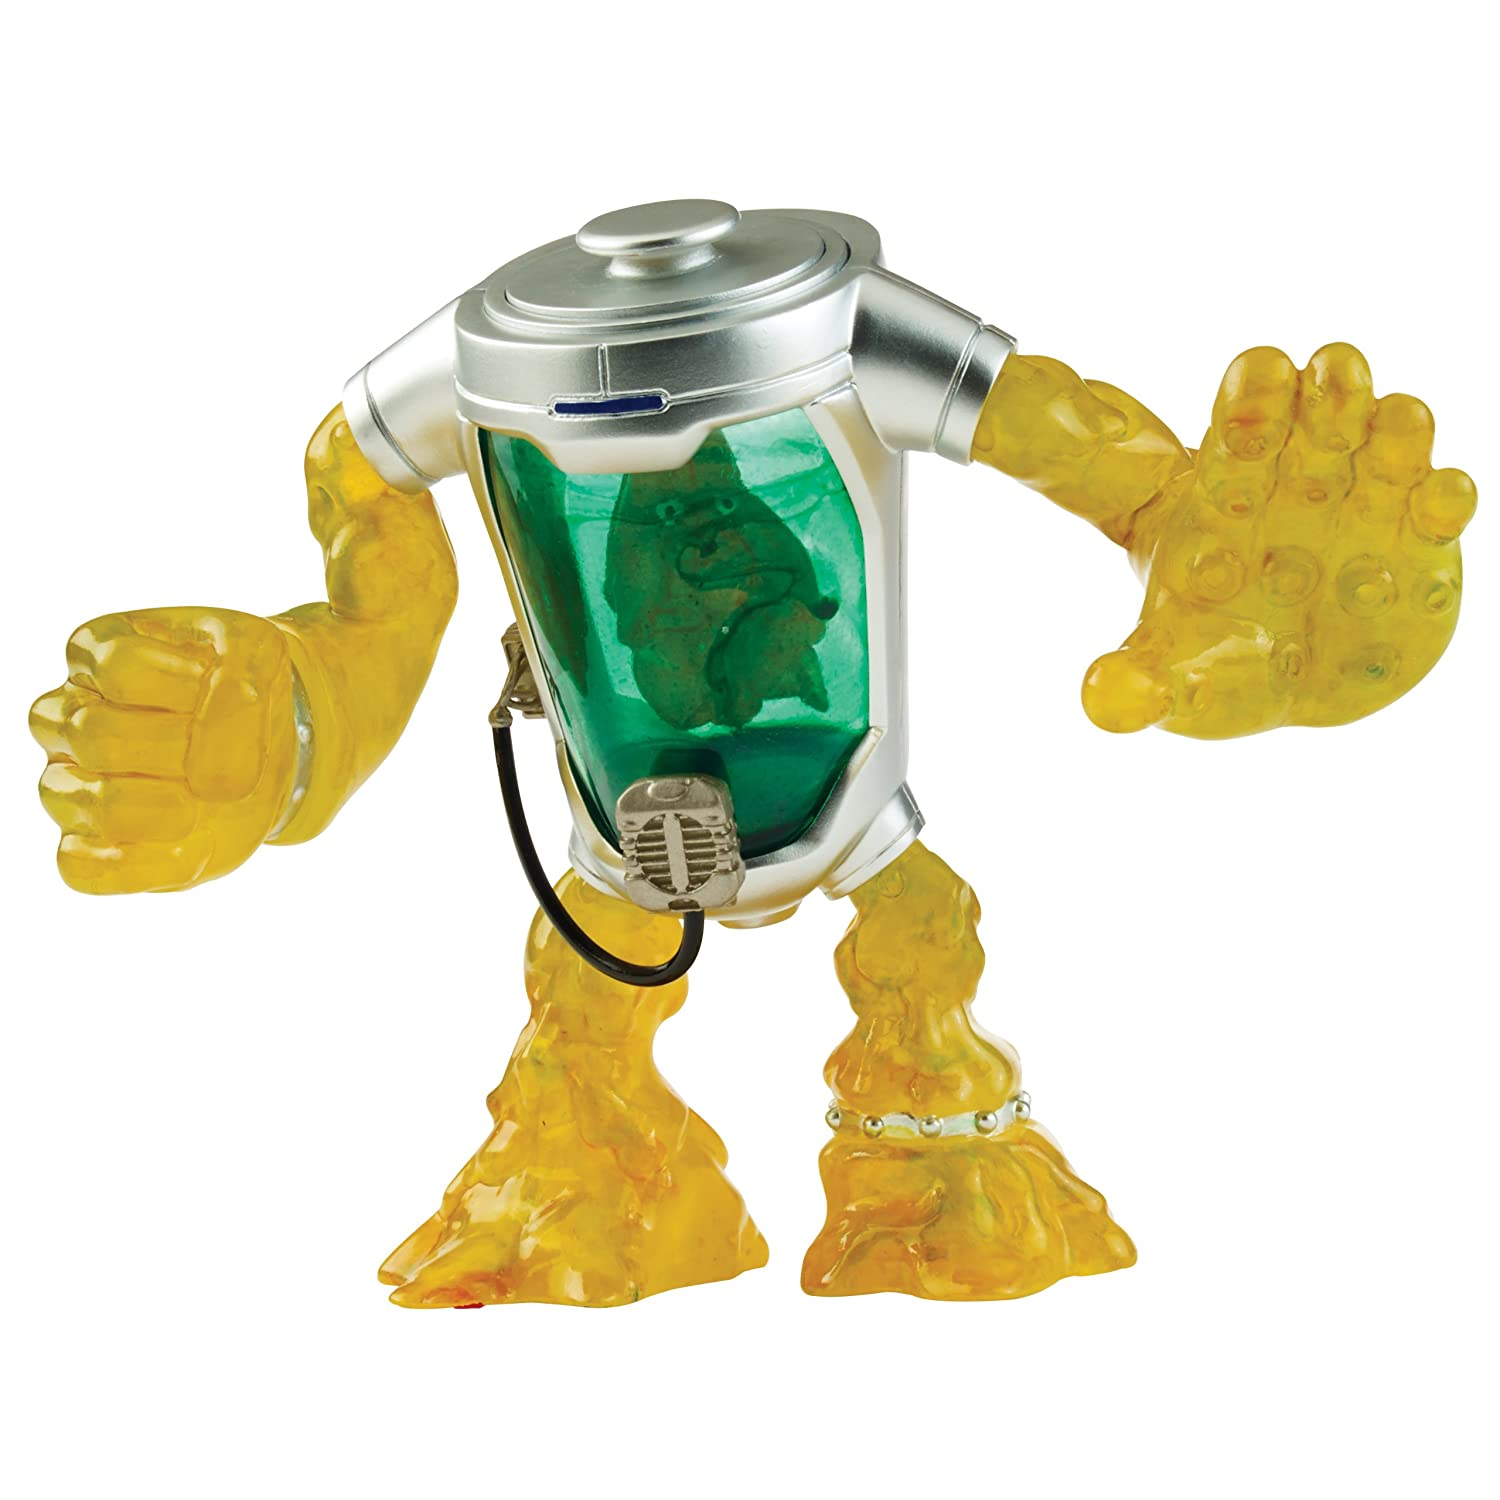 Tales of the Teenage Mutant Ninja Turtles Mutagen Man Action Figure